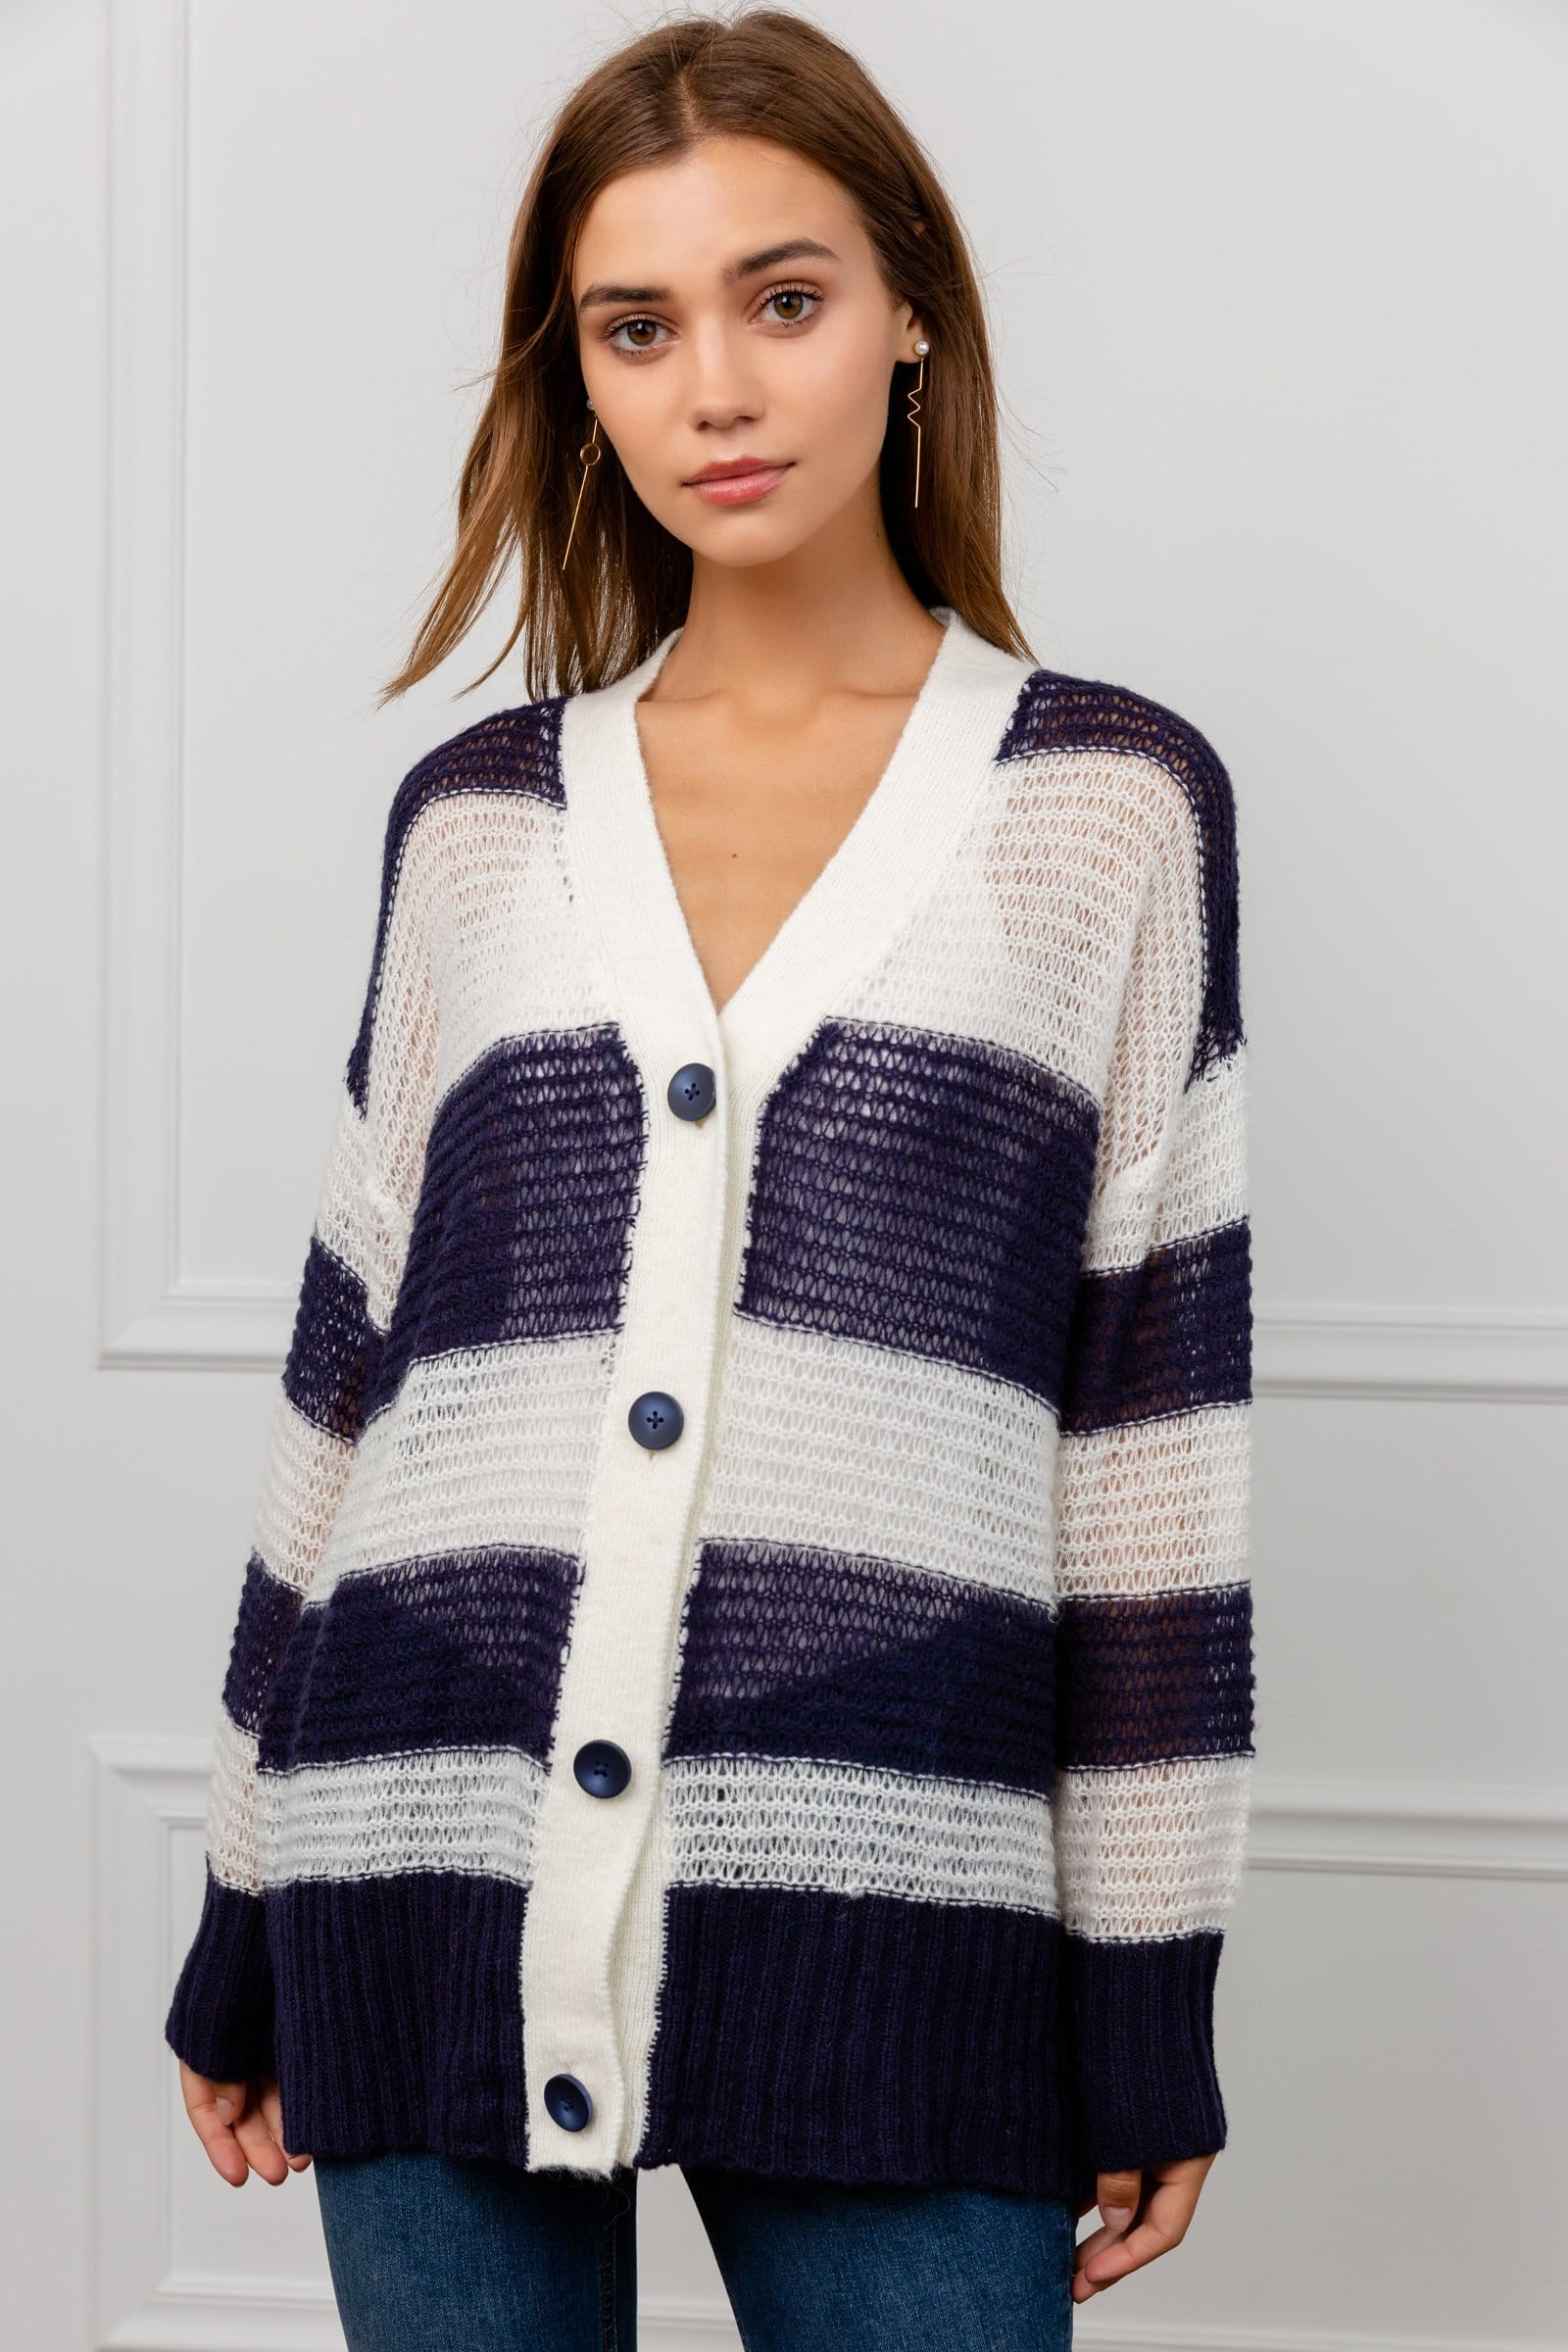 Oversize Loose Knit Fuzzy Black & White Cardigan | J.ING Women's Knitwear